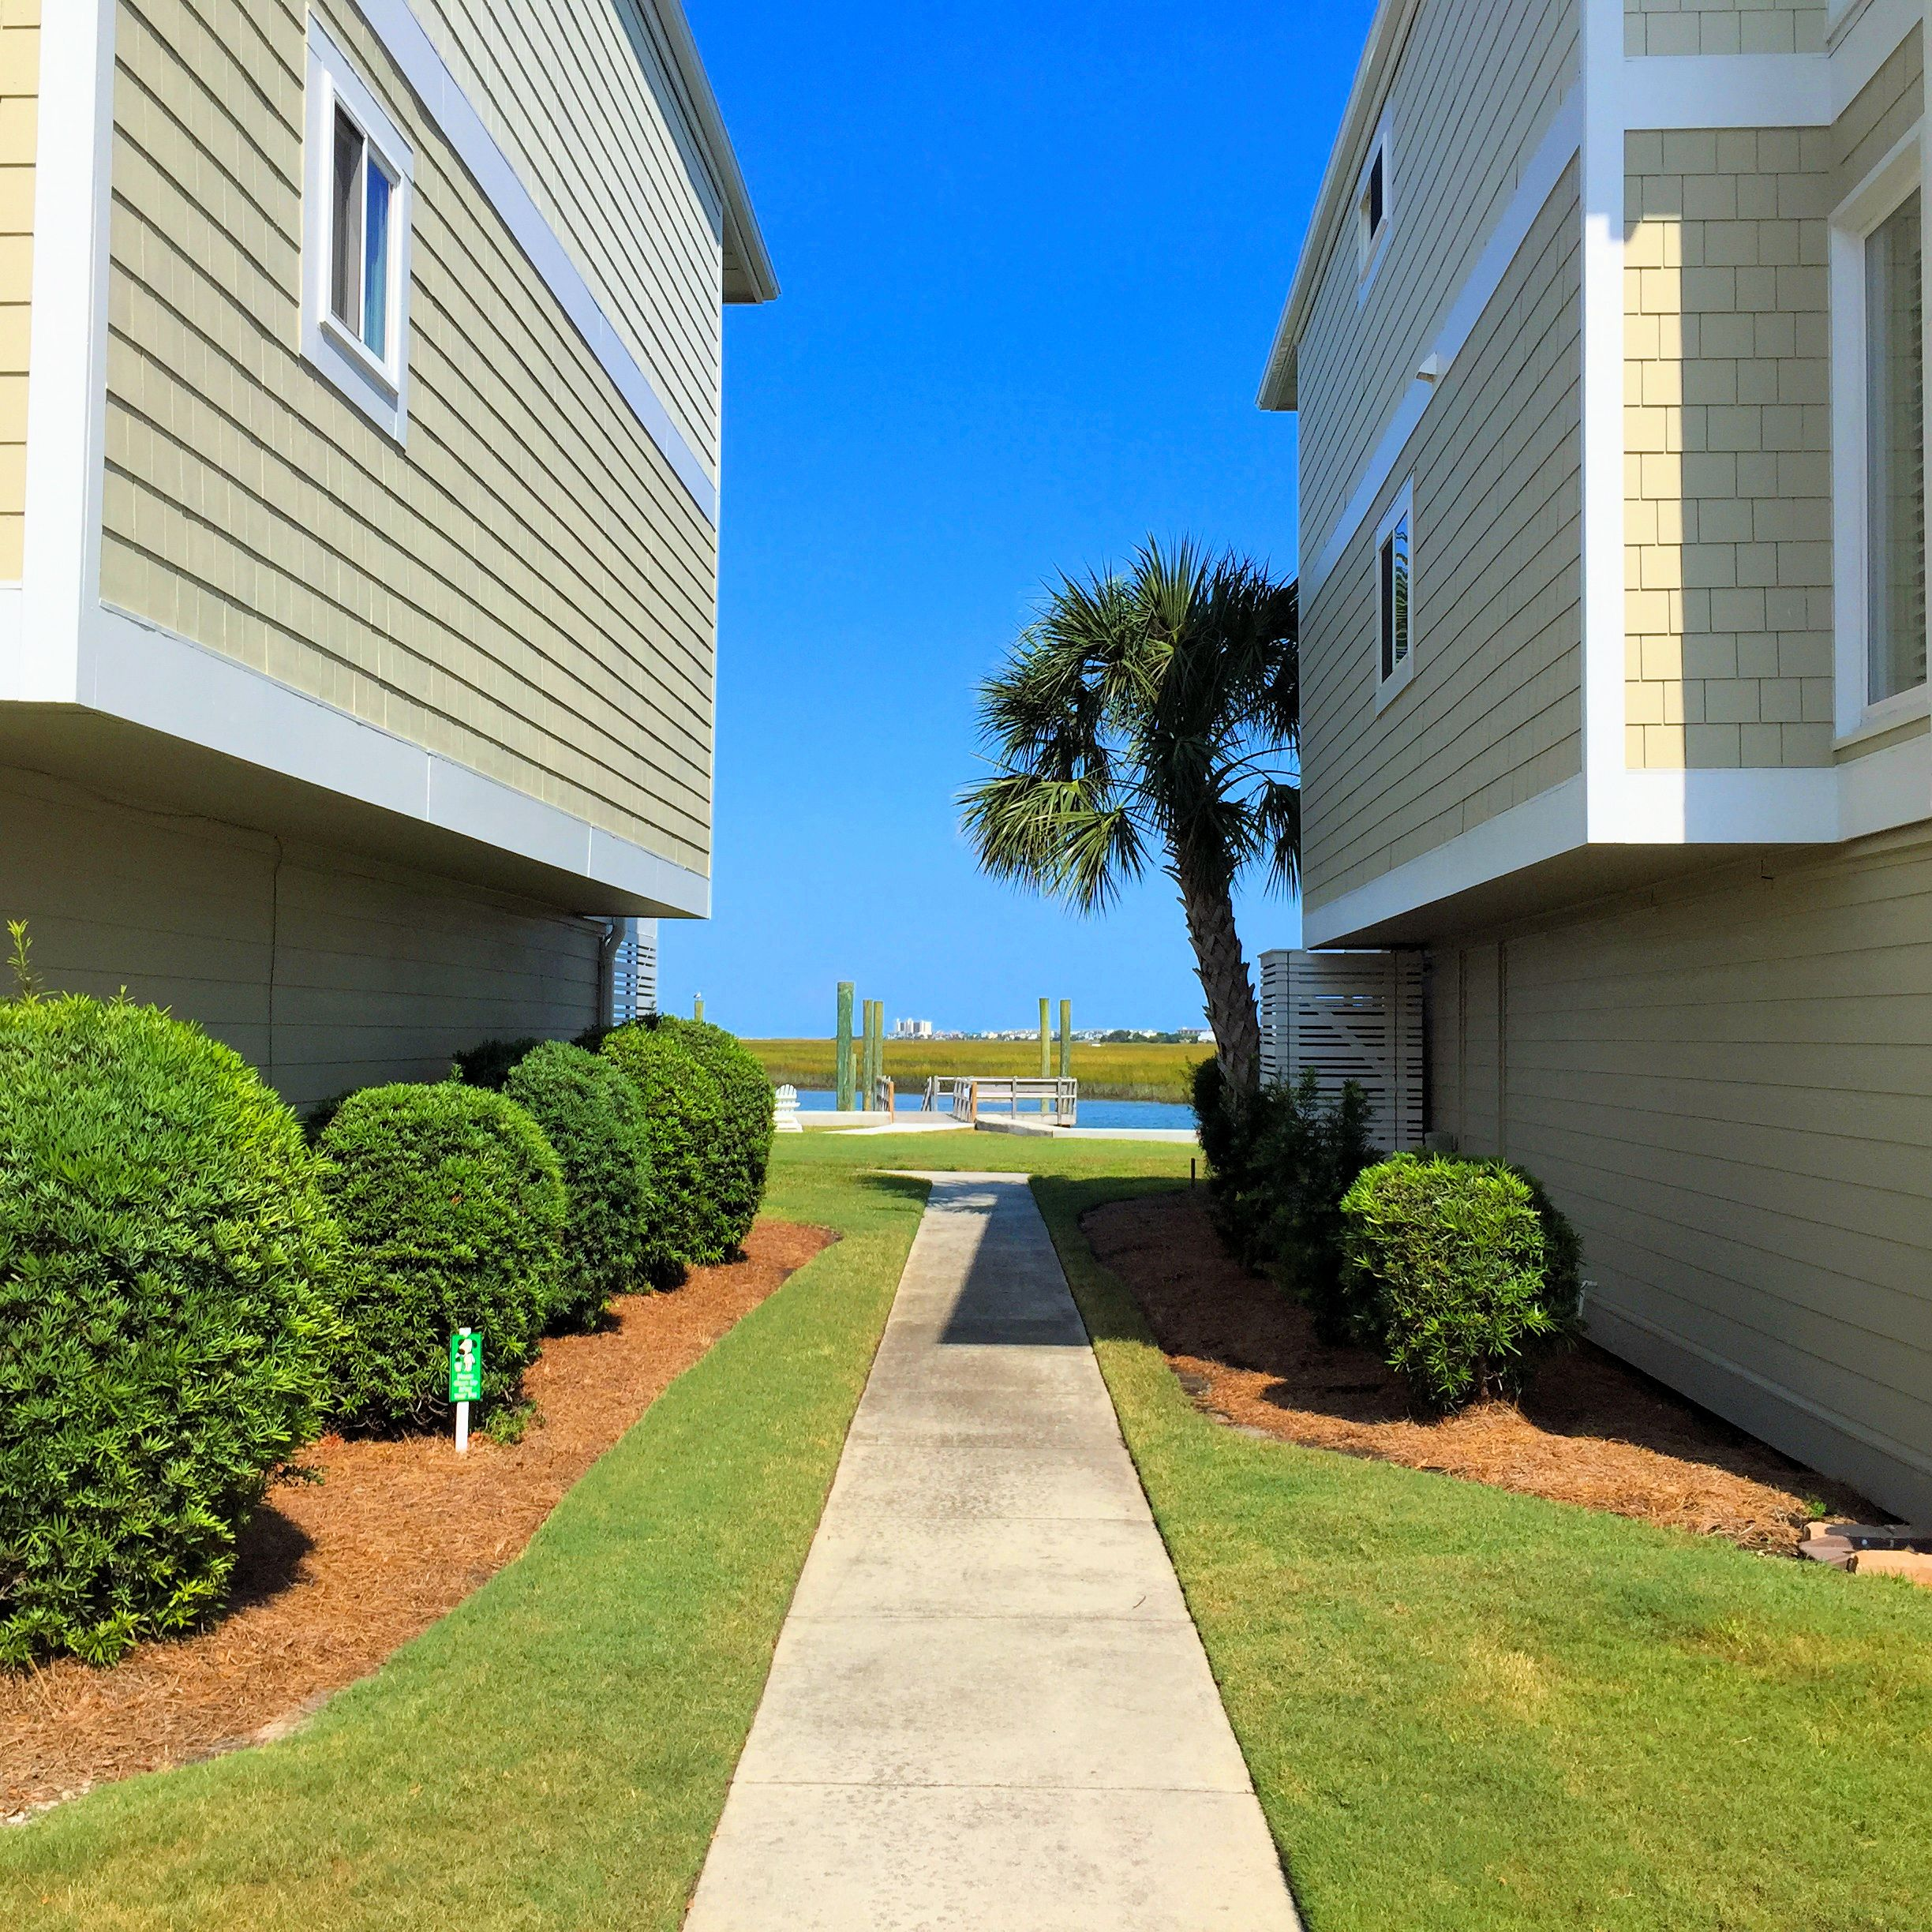 Wrightsville Beach House Rentals: Channel Walk Condos For Sale In Wrightsville Beach, NC